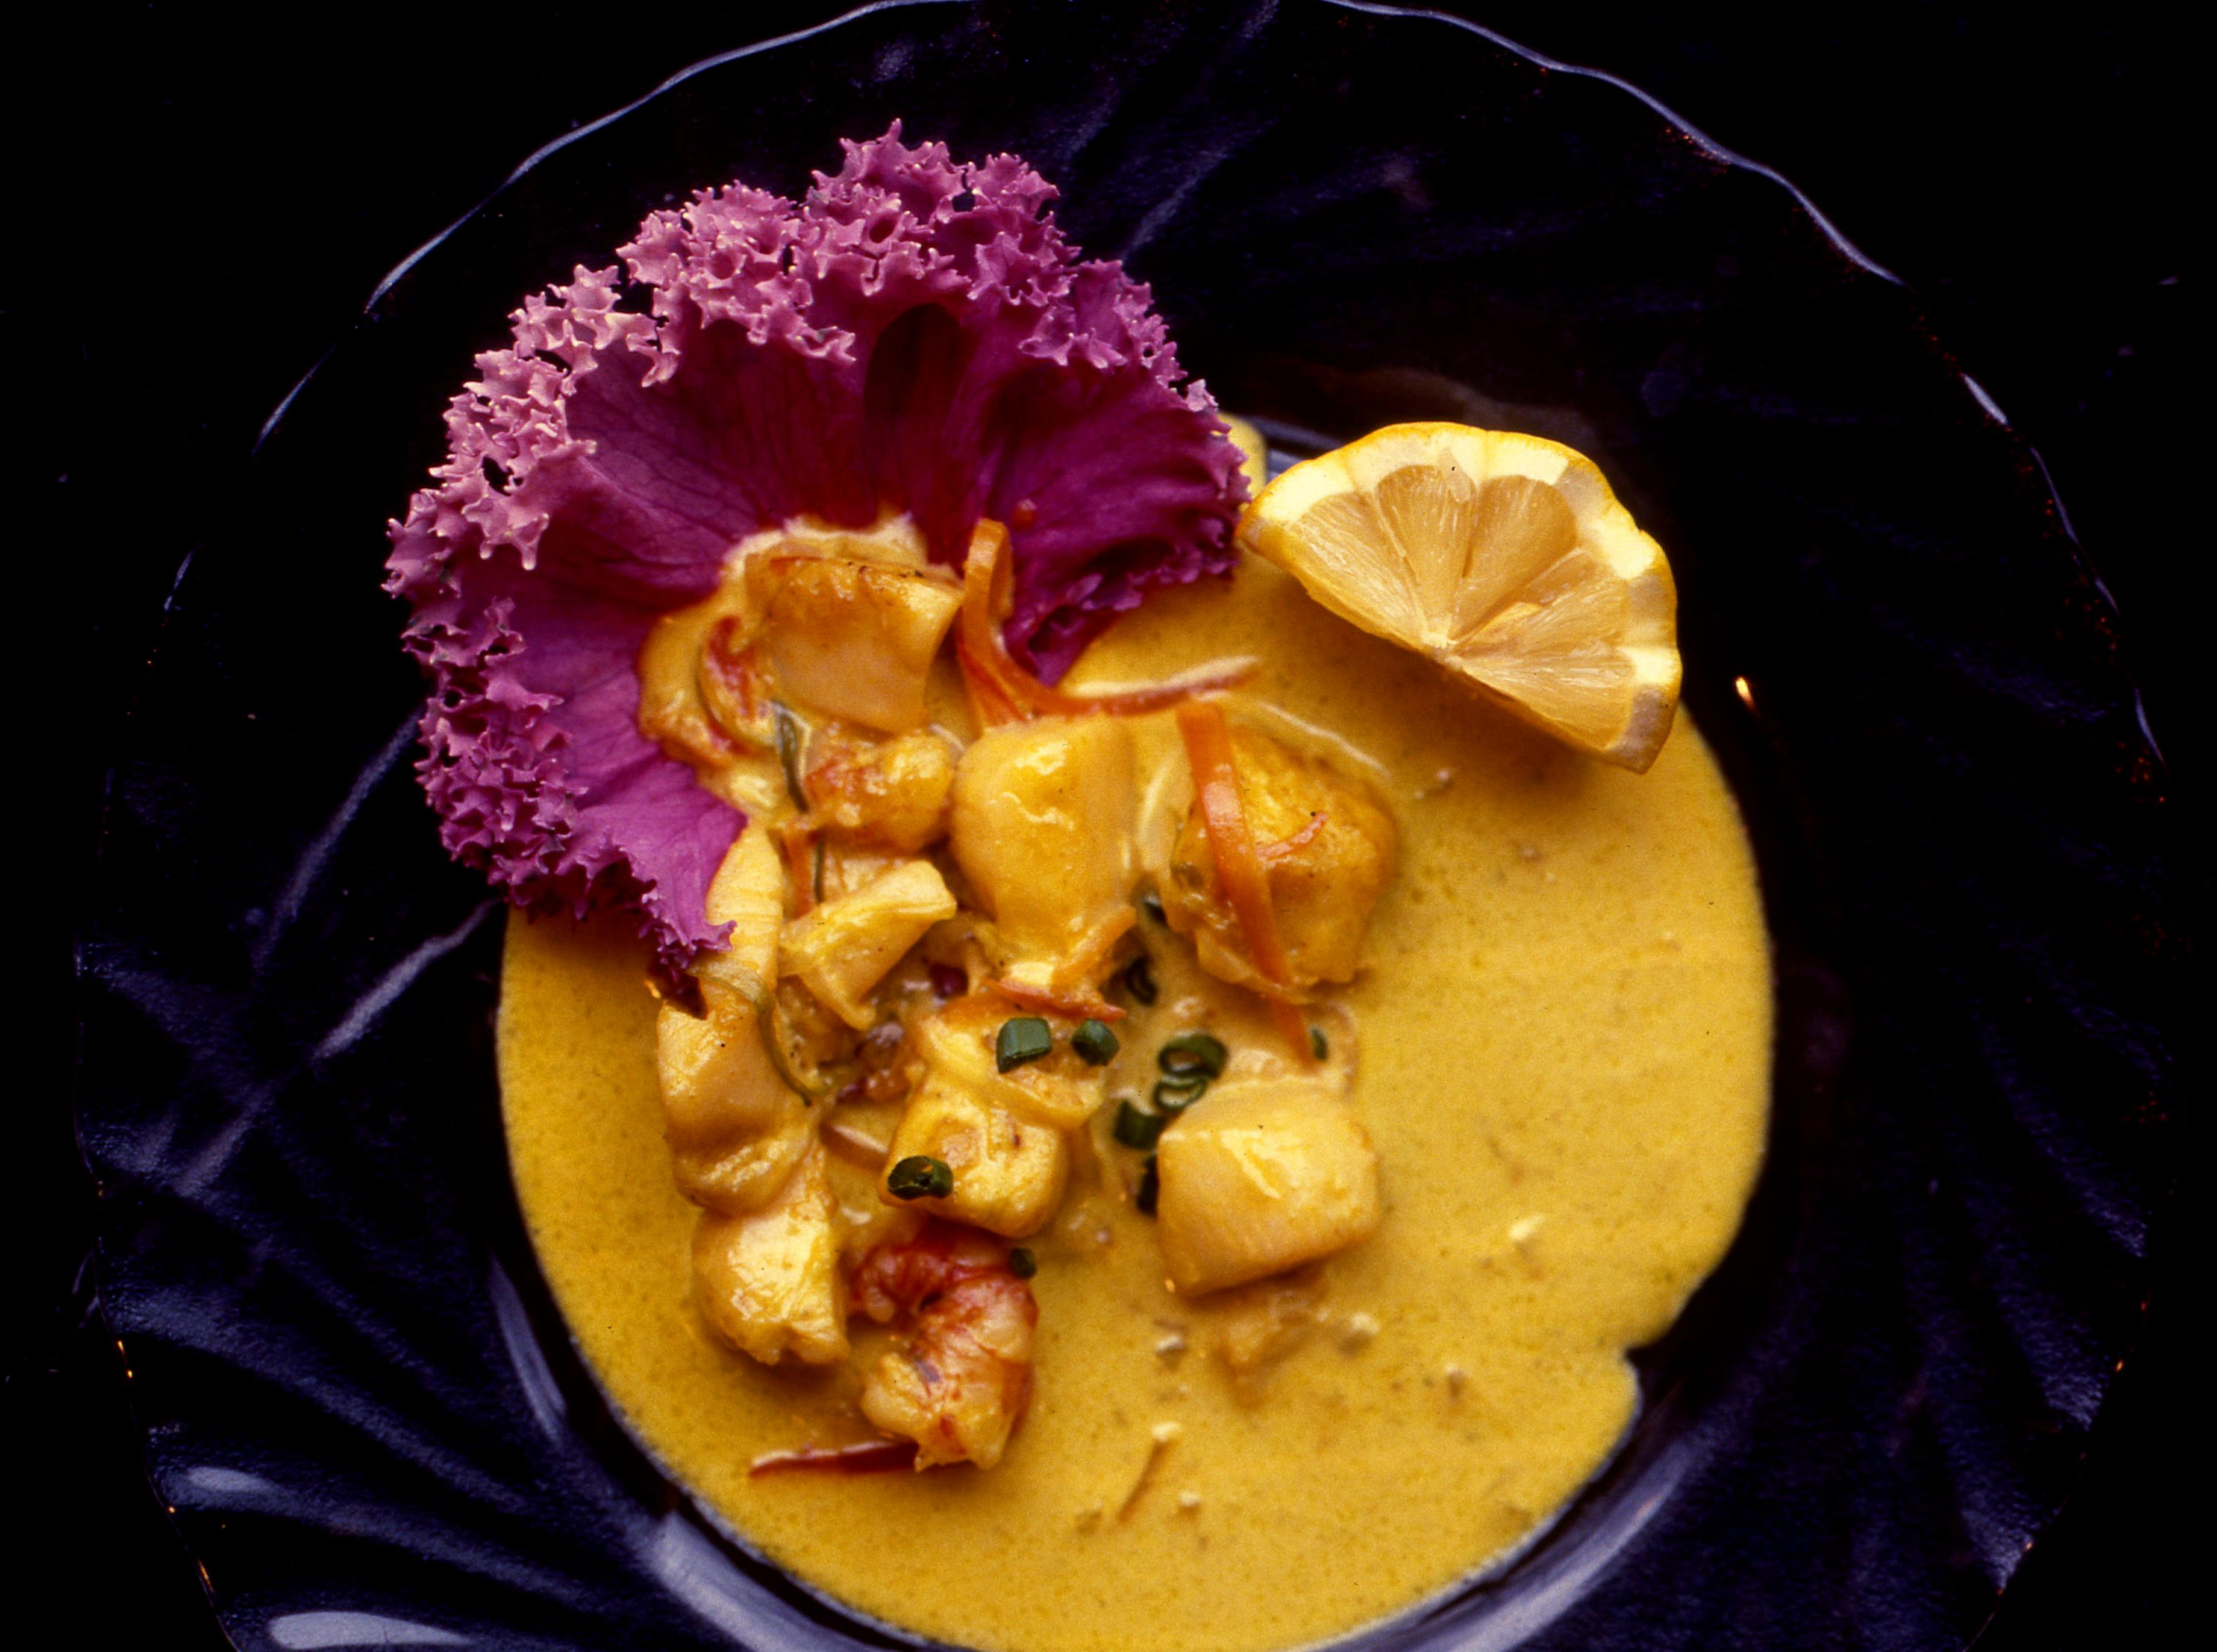 Hyatt Regency chef Curtis Benson's Cajun Scallop and Shrimp Appetizer, winner of the local American Seafood Challenge sponsored by Robert Orr/Sysco at Vanderbilt University's Branscomb Hall on Feb. 4, 1989, is flavored with shallots, white wine and Paul Prudhomme's seasoning.